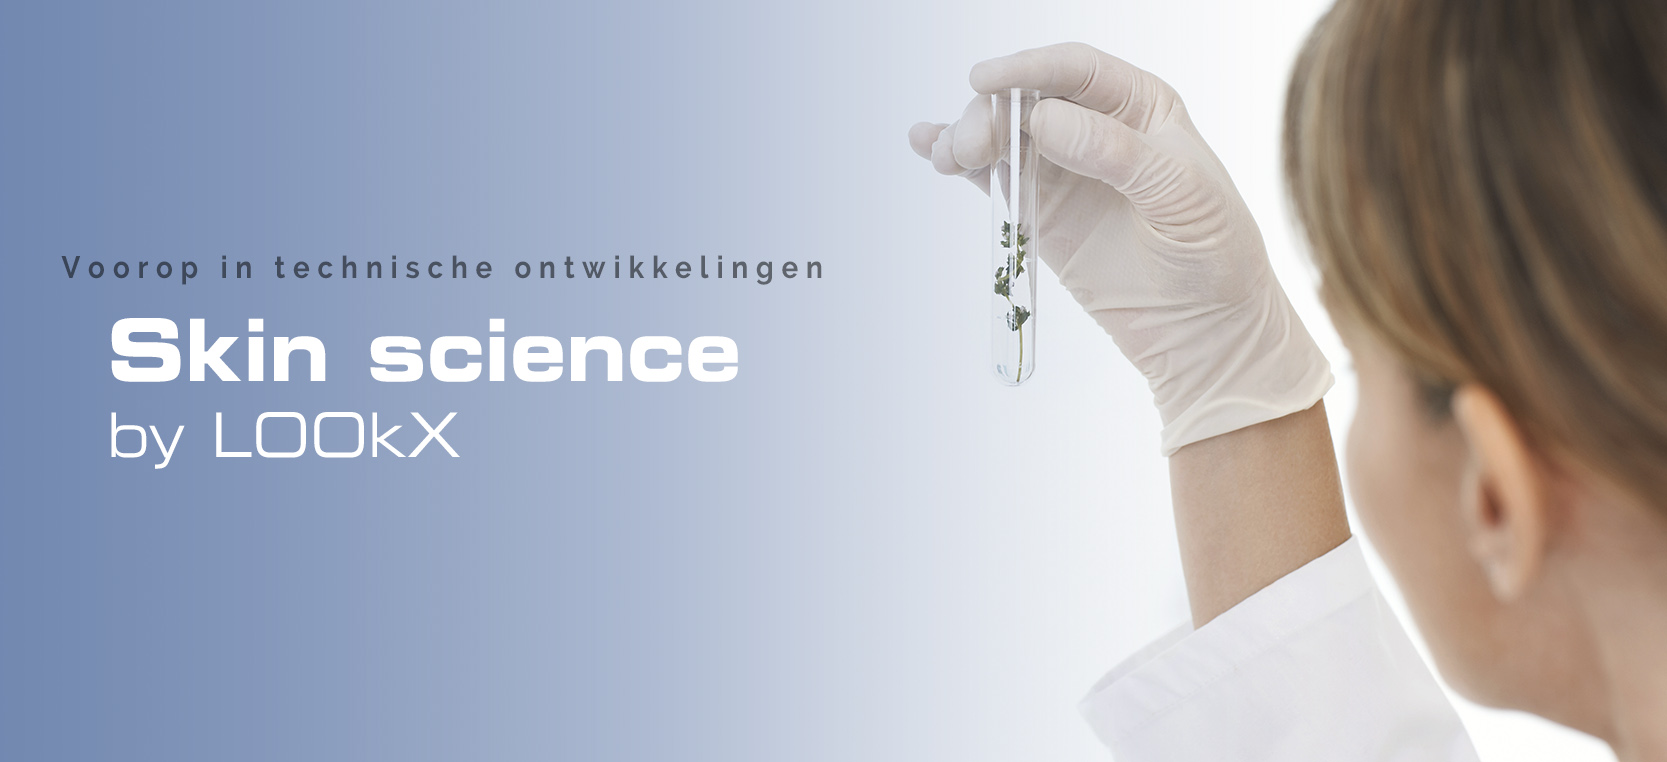 Skin science header